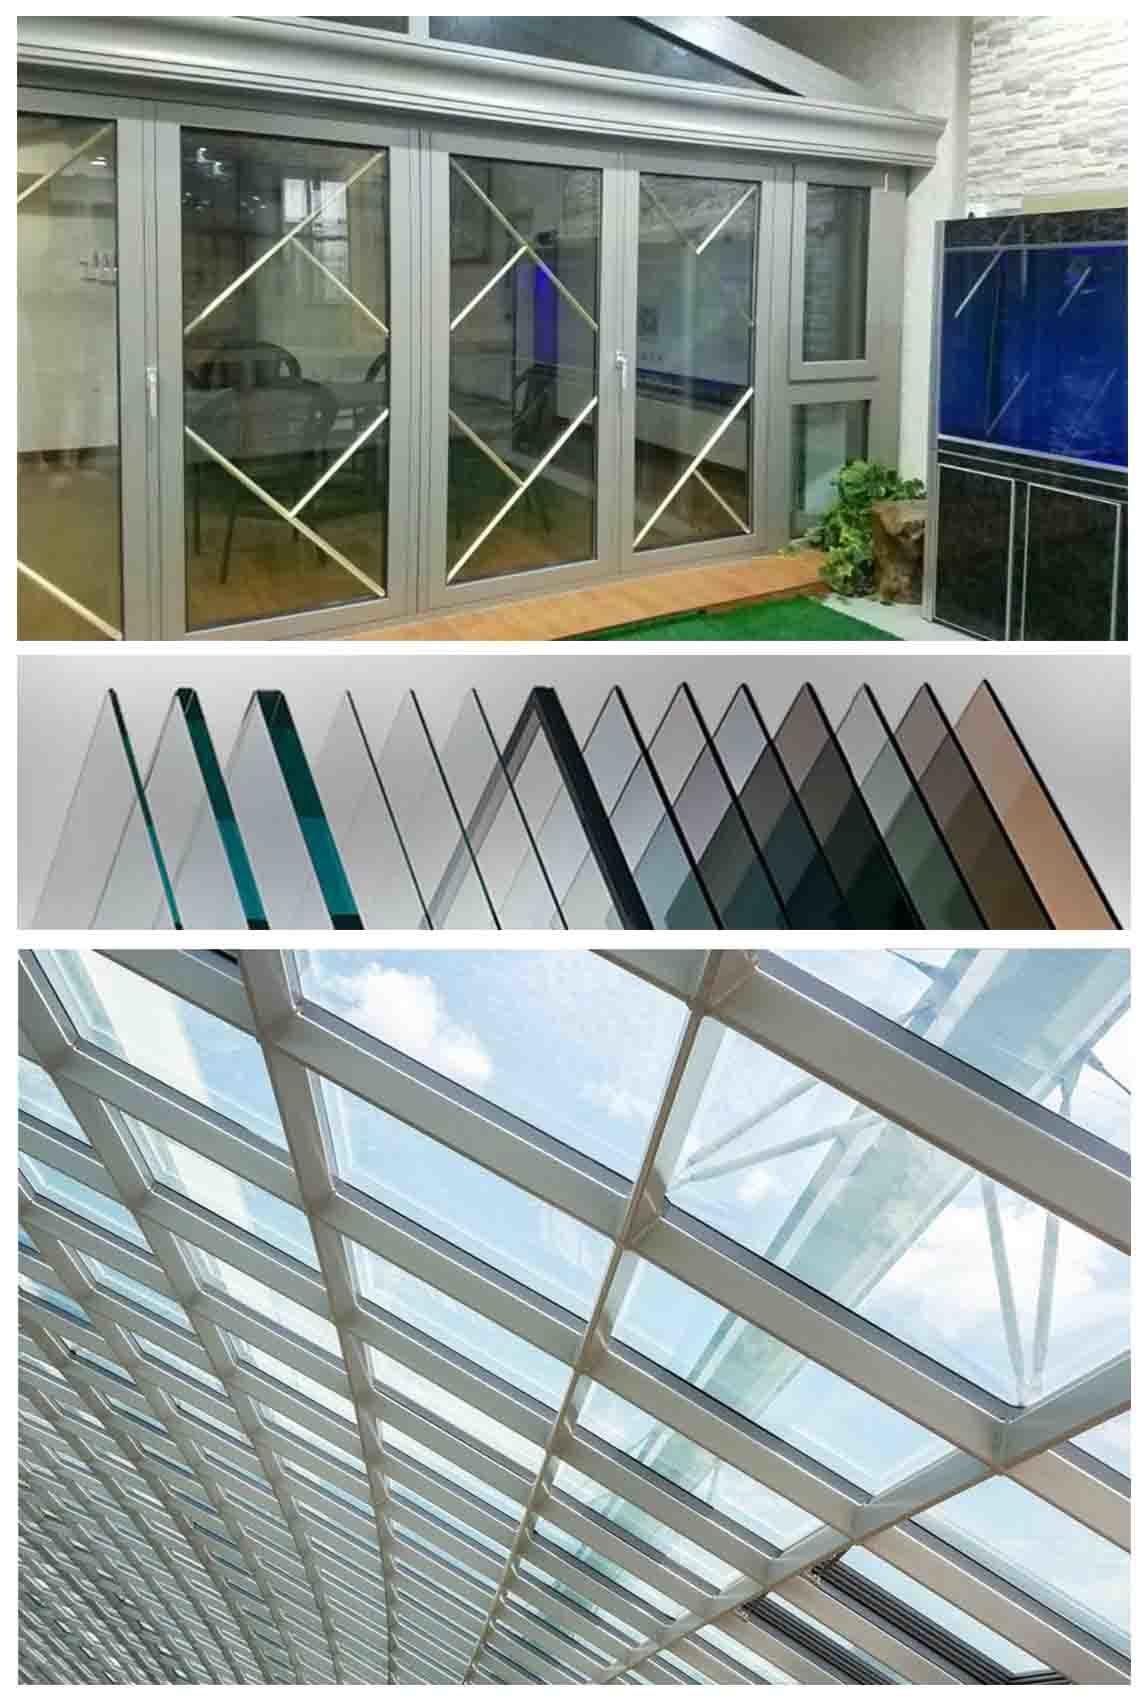 frameless frosted tempered glass wall panel customized design for showering enclosure